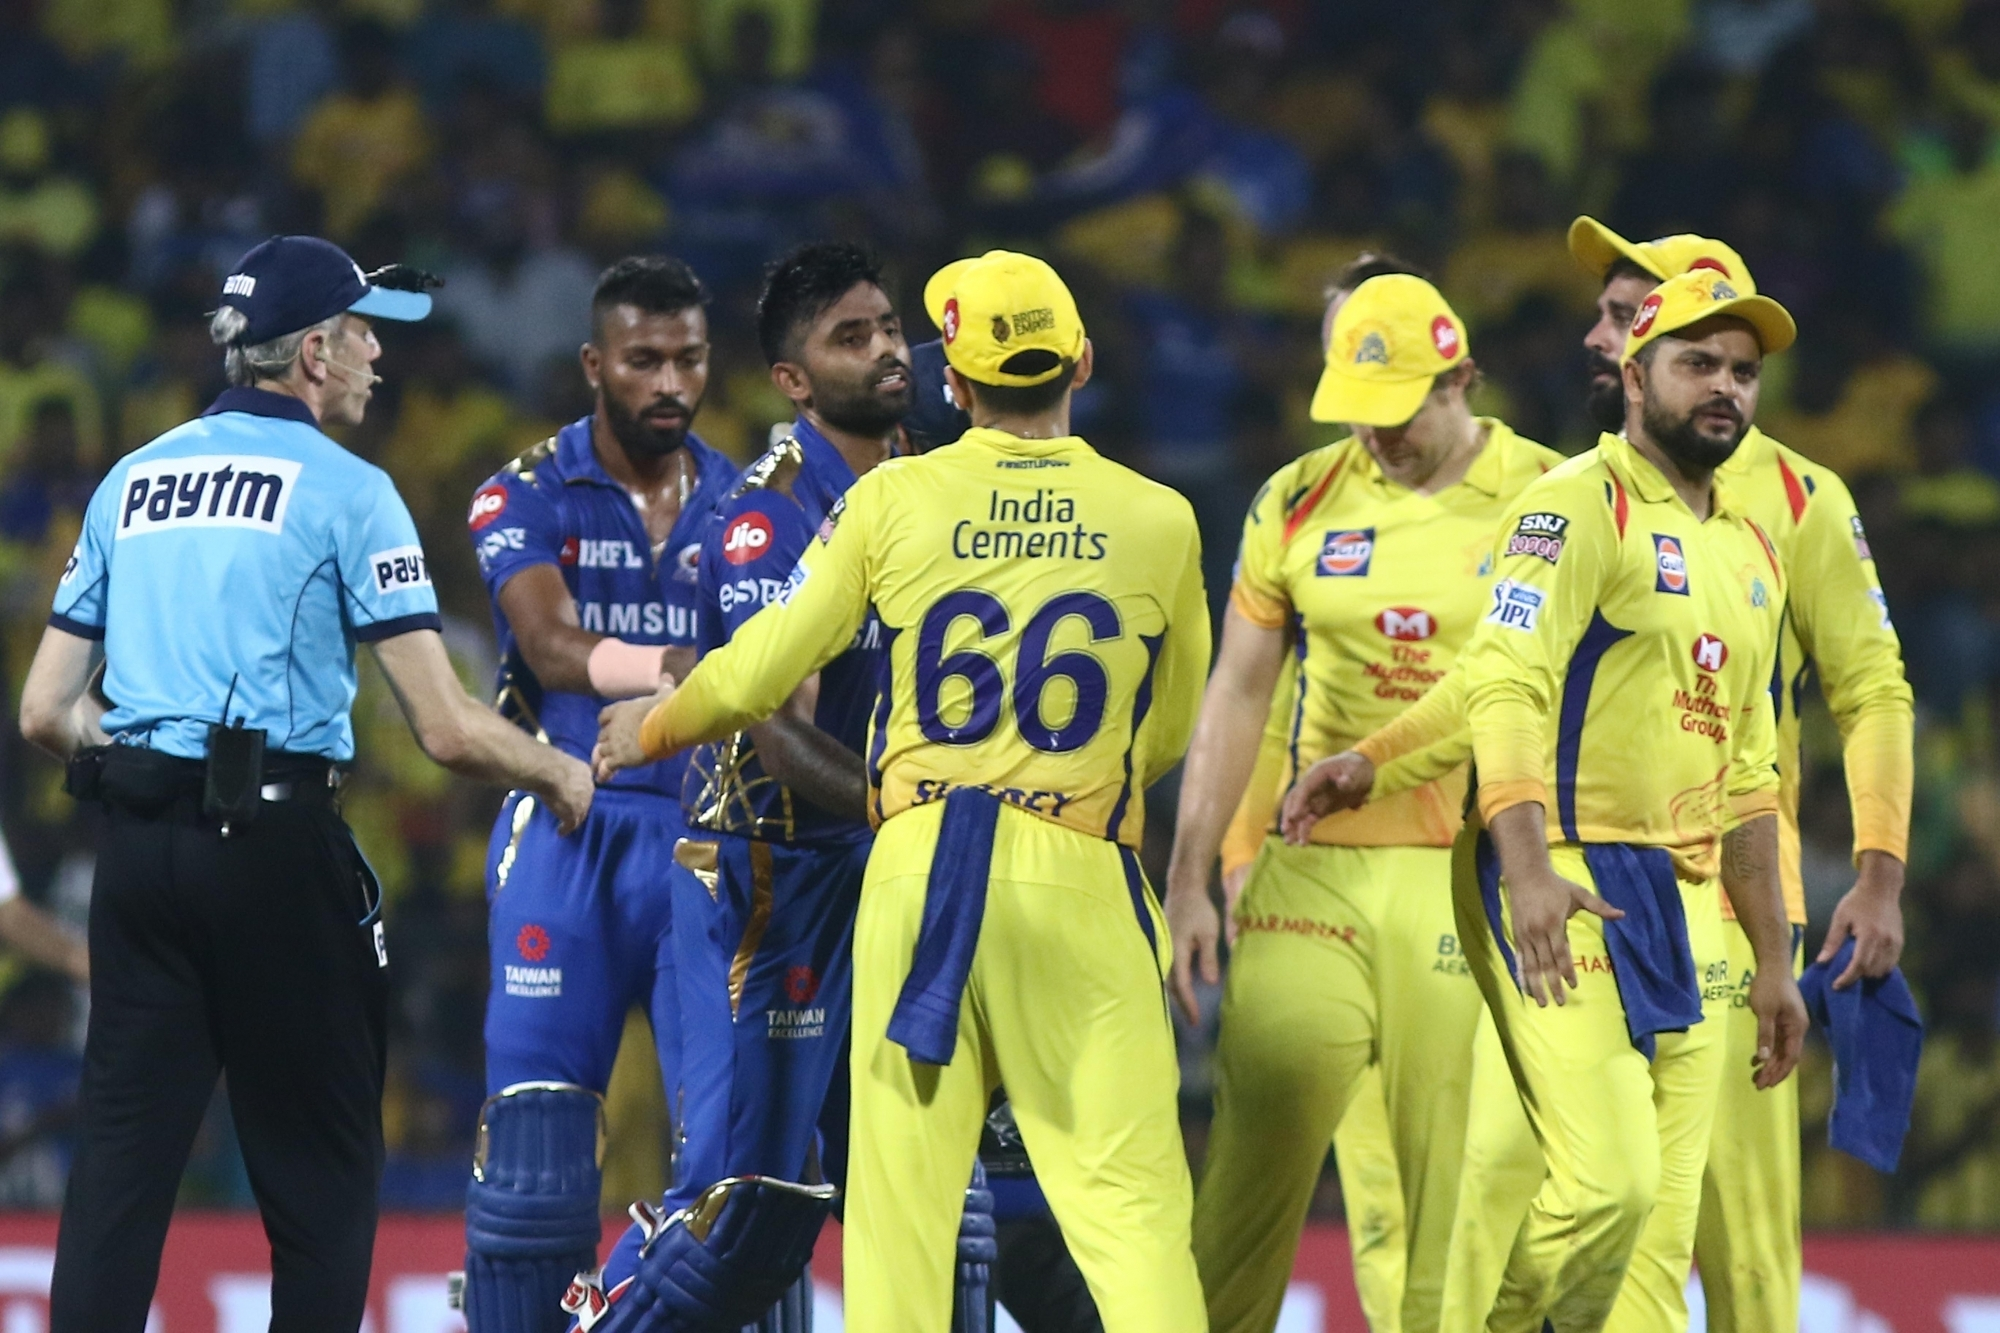 IPL 2020 is likely to be cancelled | IANS